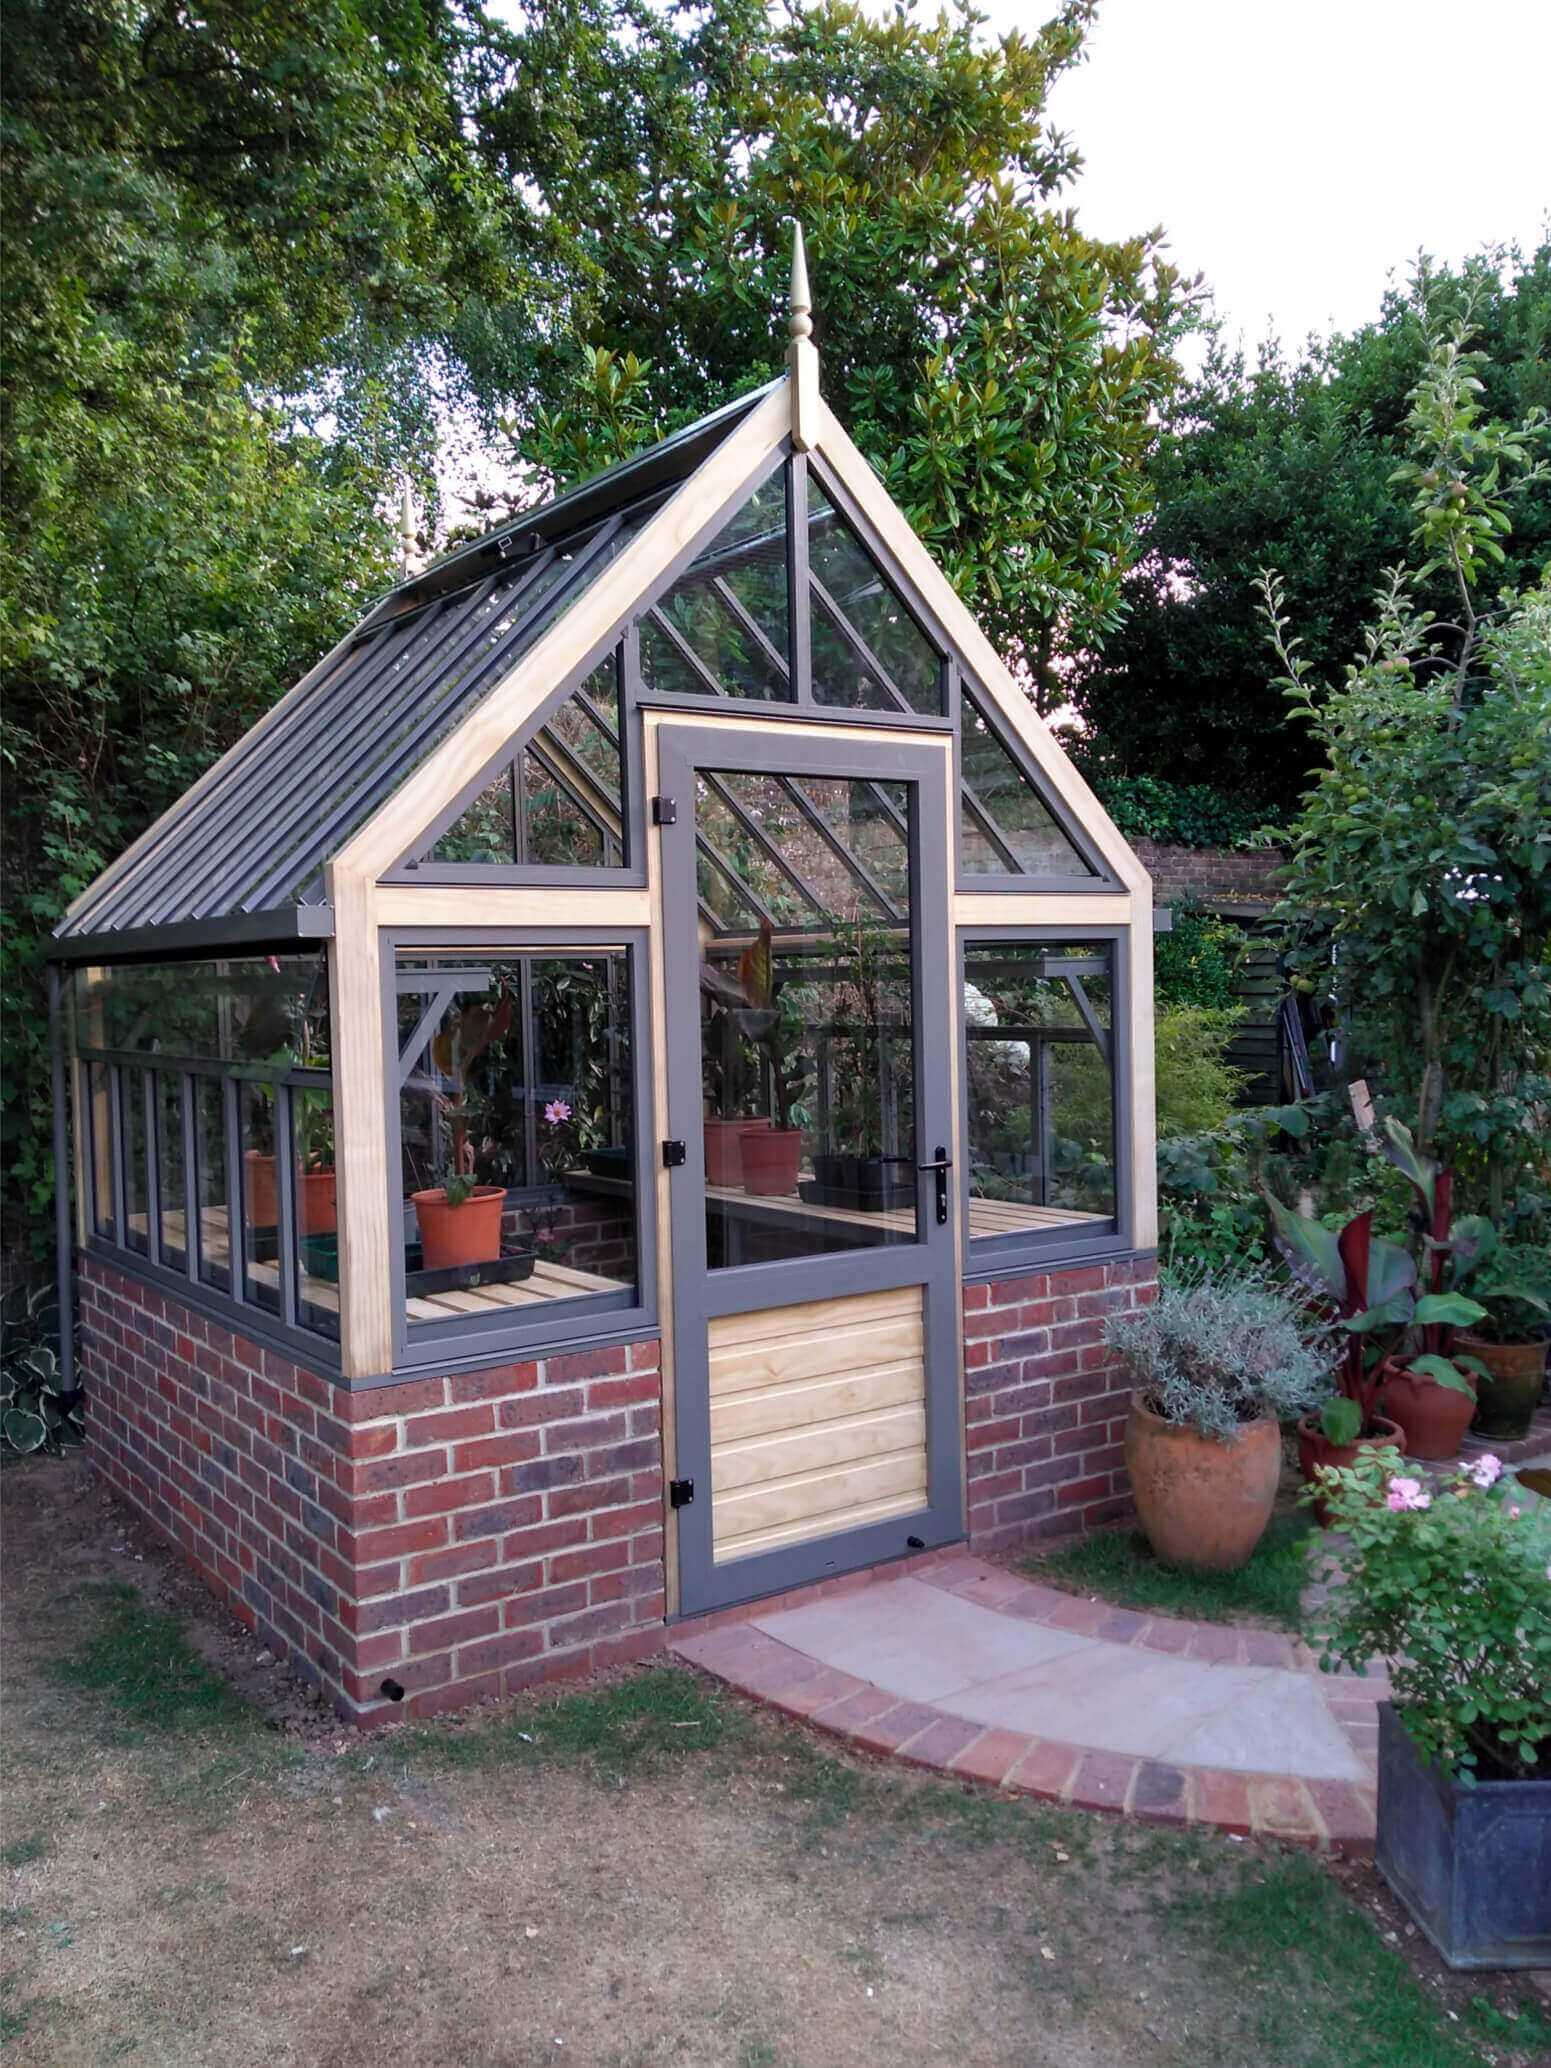 Victorian greenhouse, greenhouse on wall